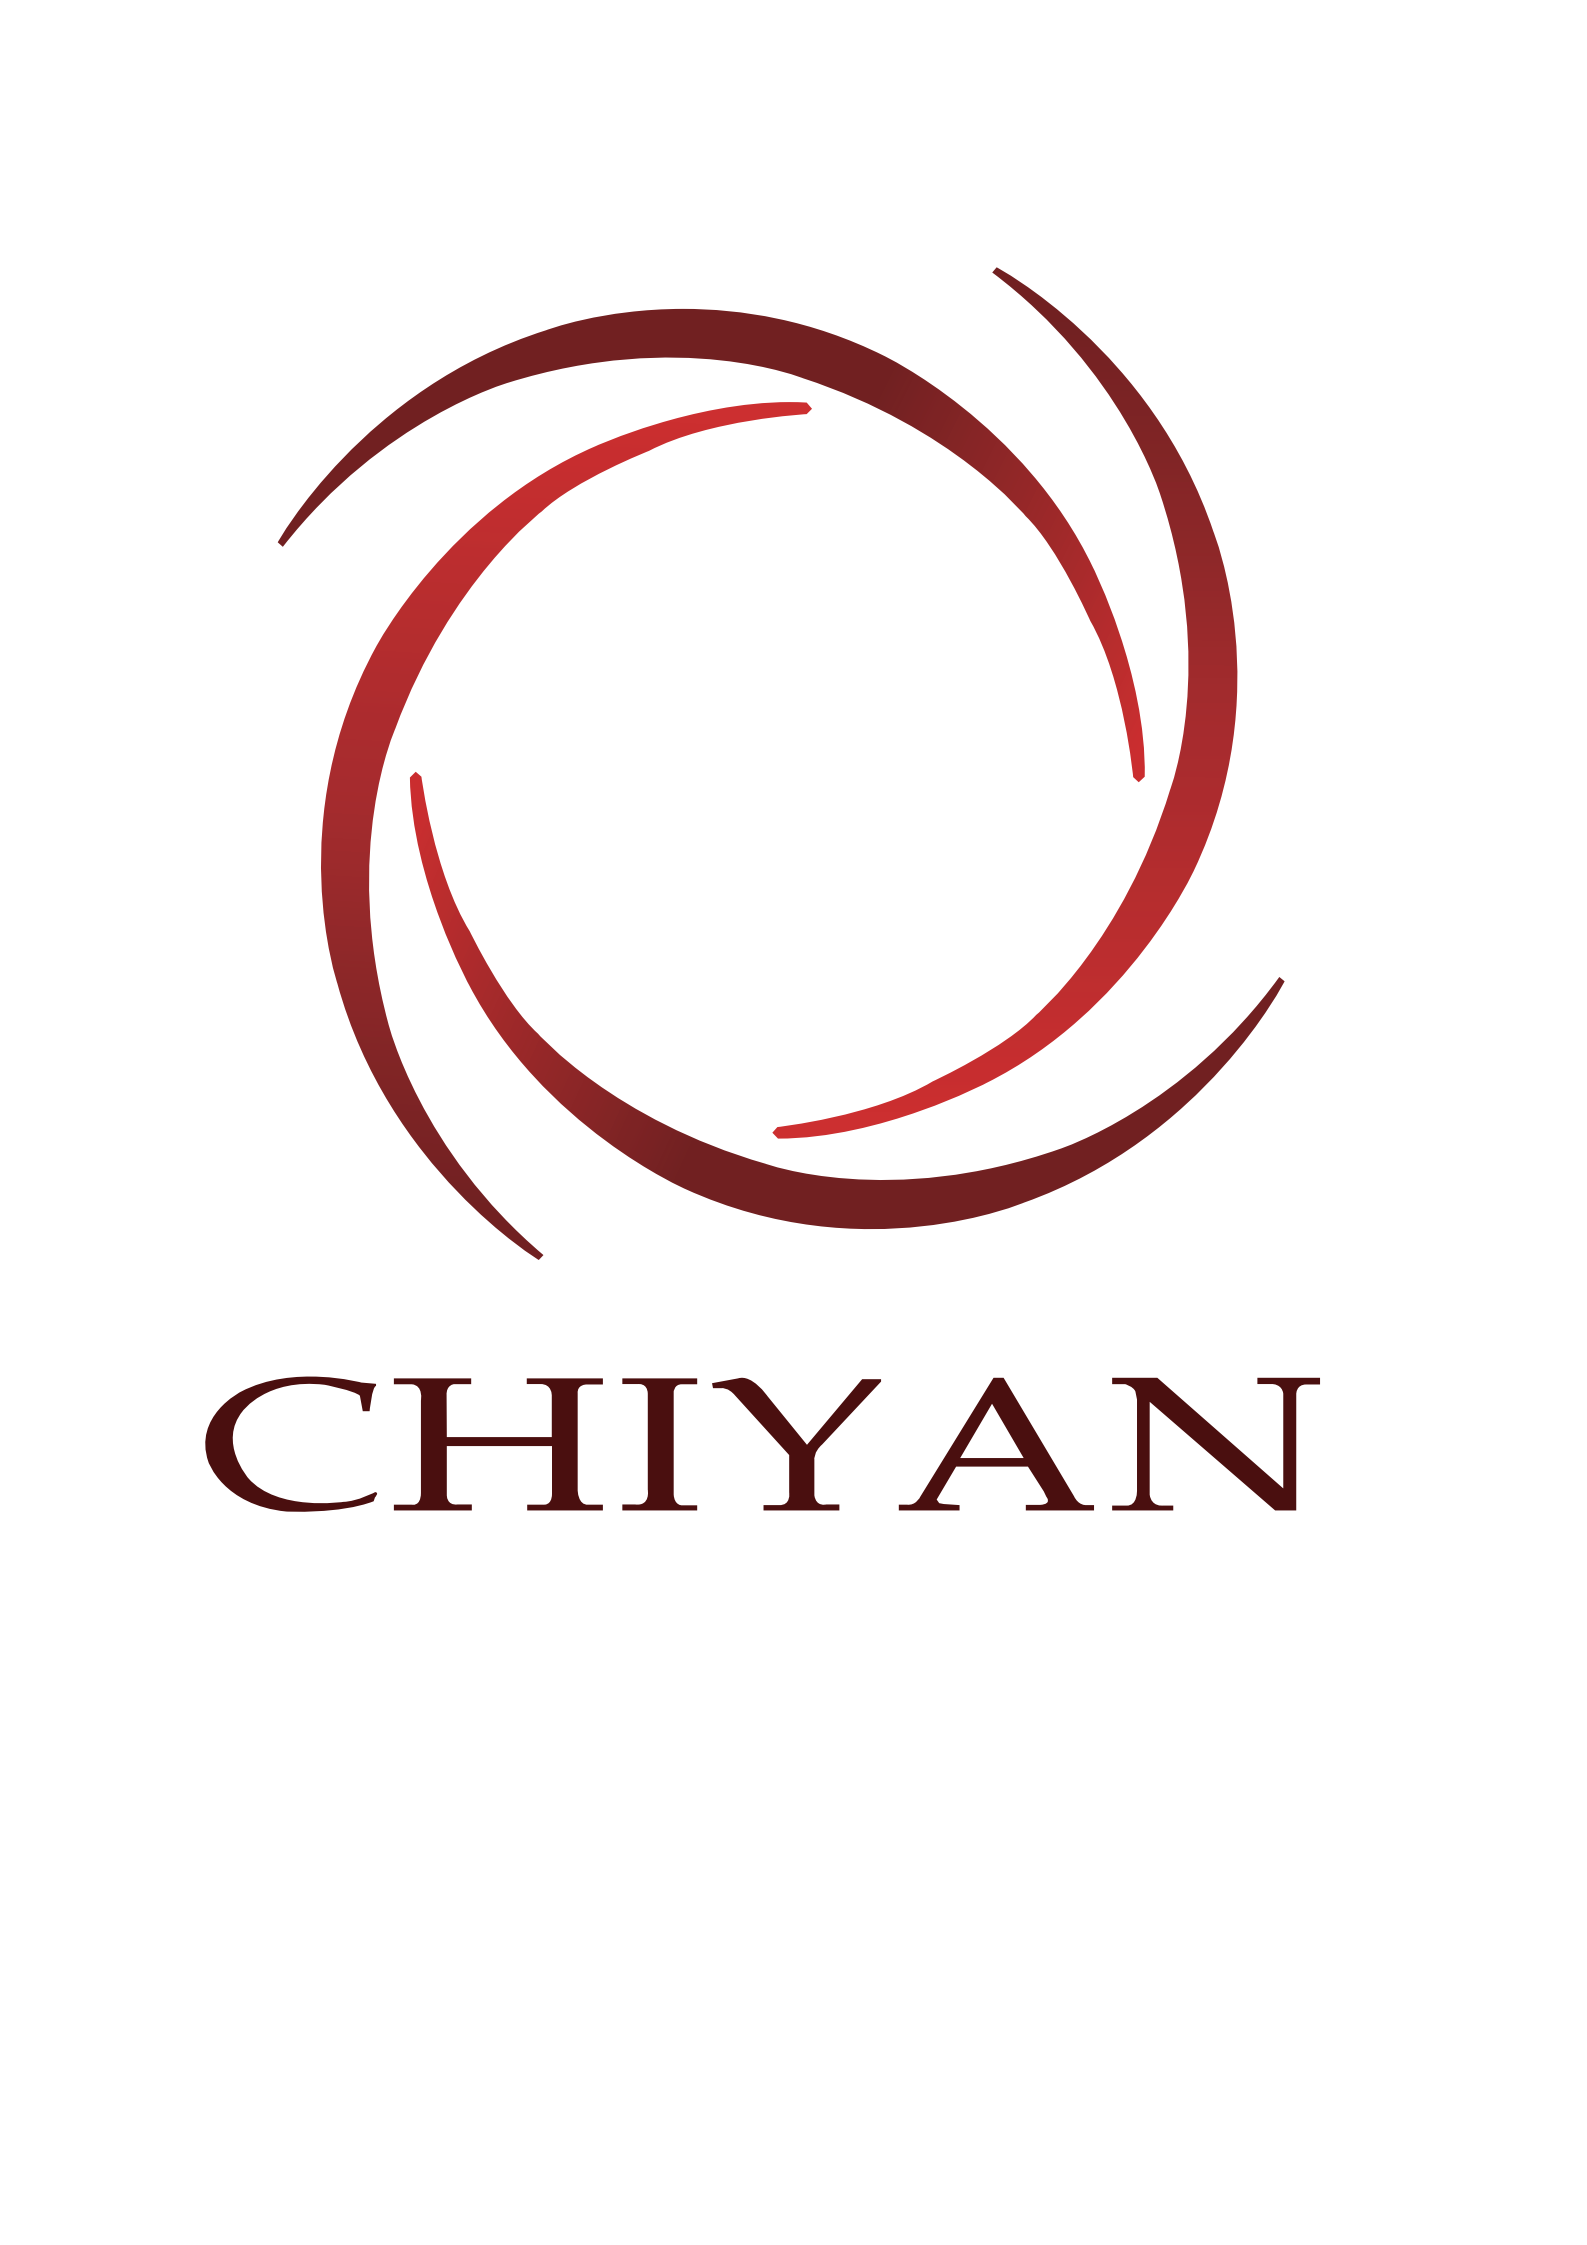 Shanghai Chiyan Abrasives Co., Ltd.